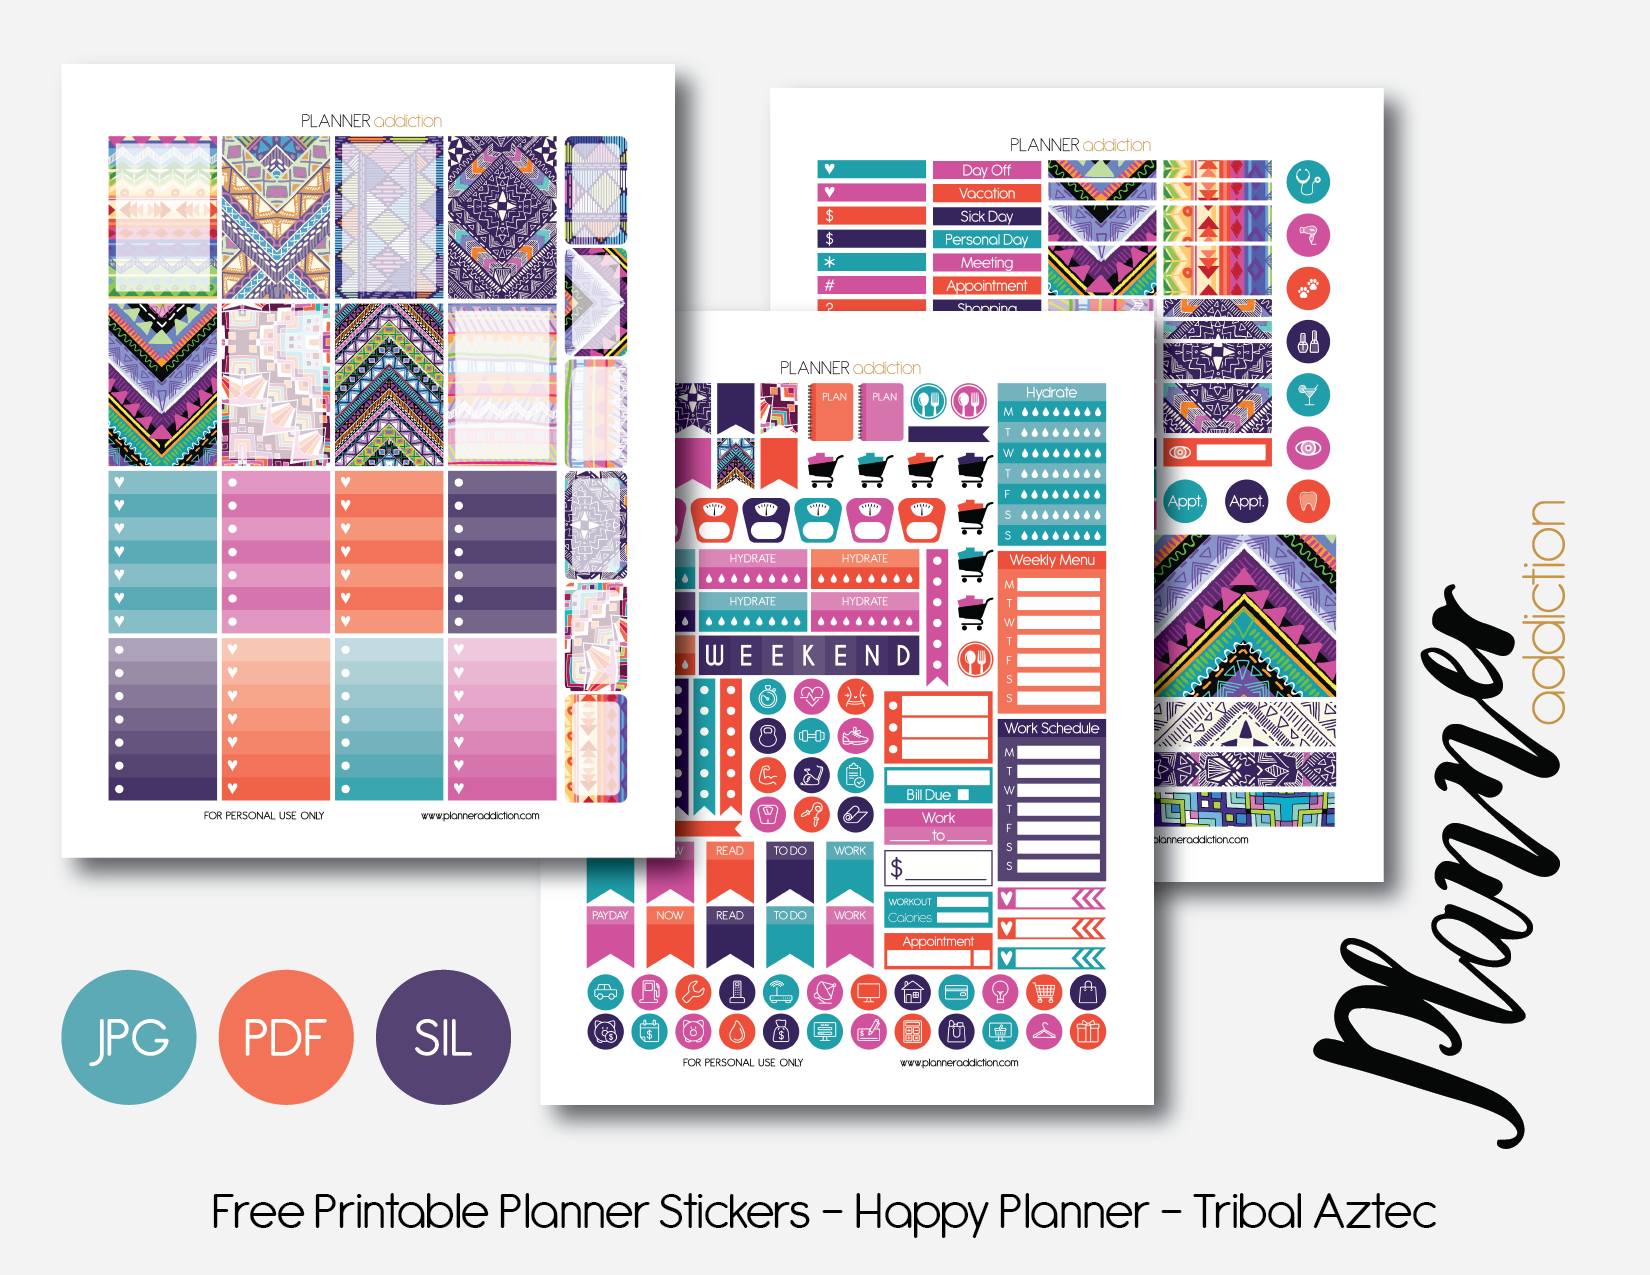 Free Printable Planner Stickers – Planner Addiction - Happy Planner Free Printable Stickers